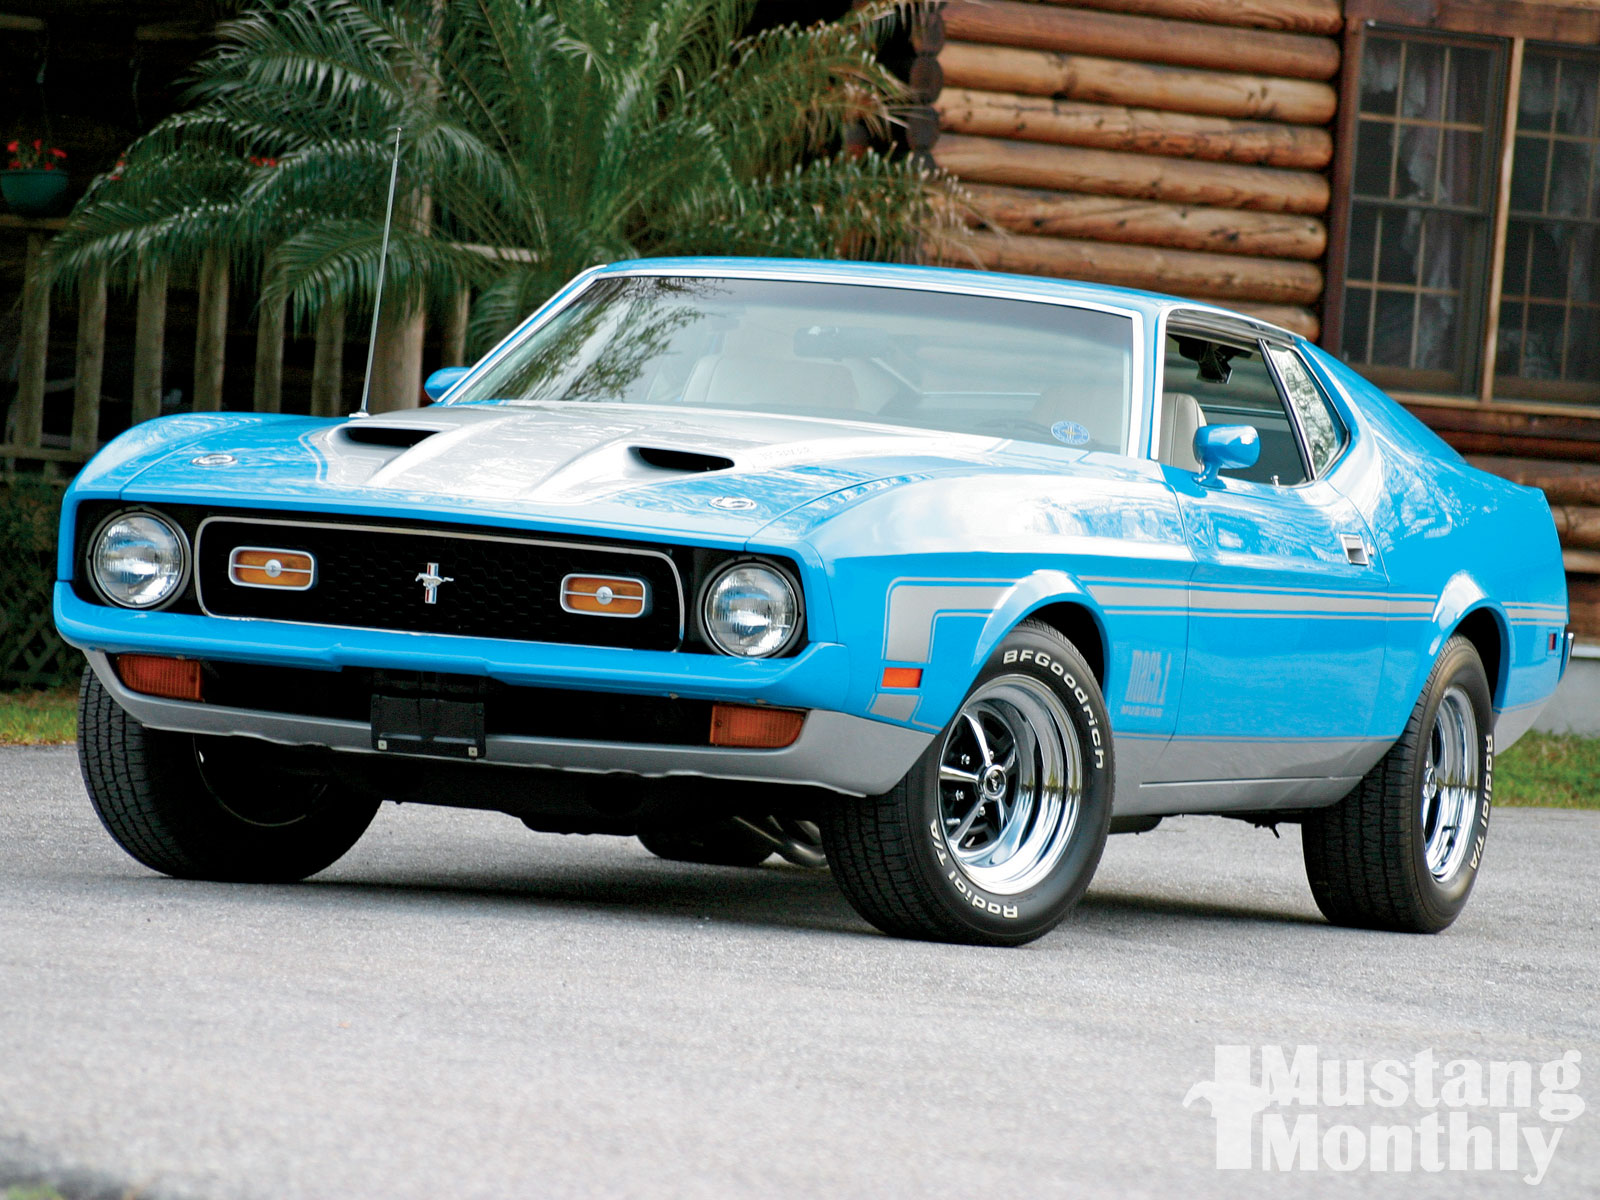 Cl Mustang >> 3DTuning of Mustang Mach 1 Coupe 1971 3DTuning.com ...